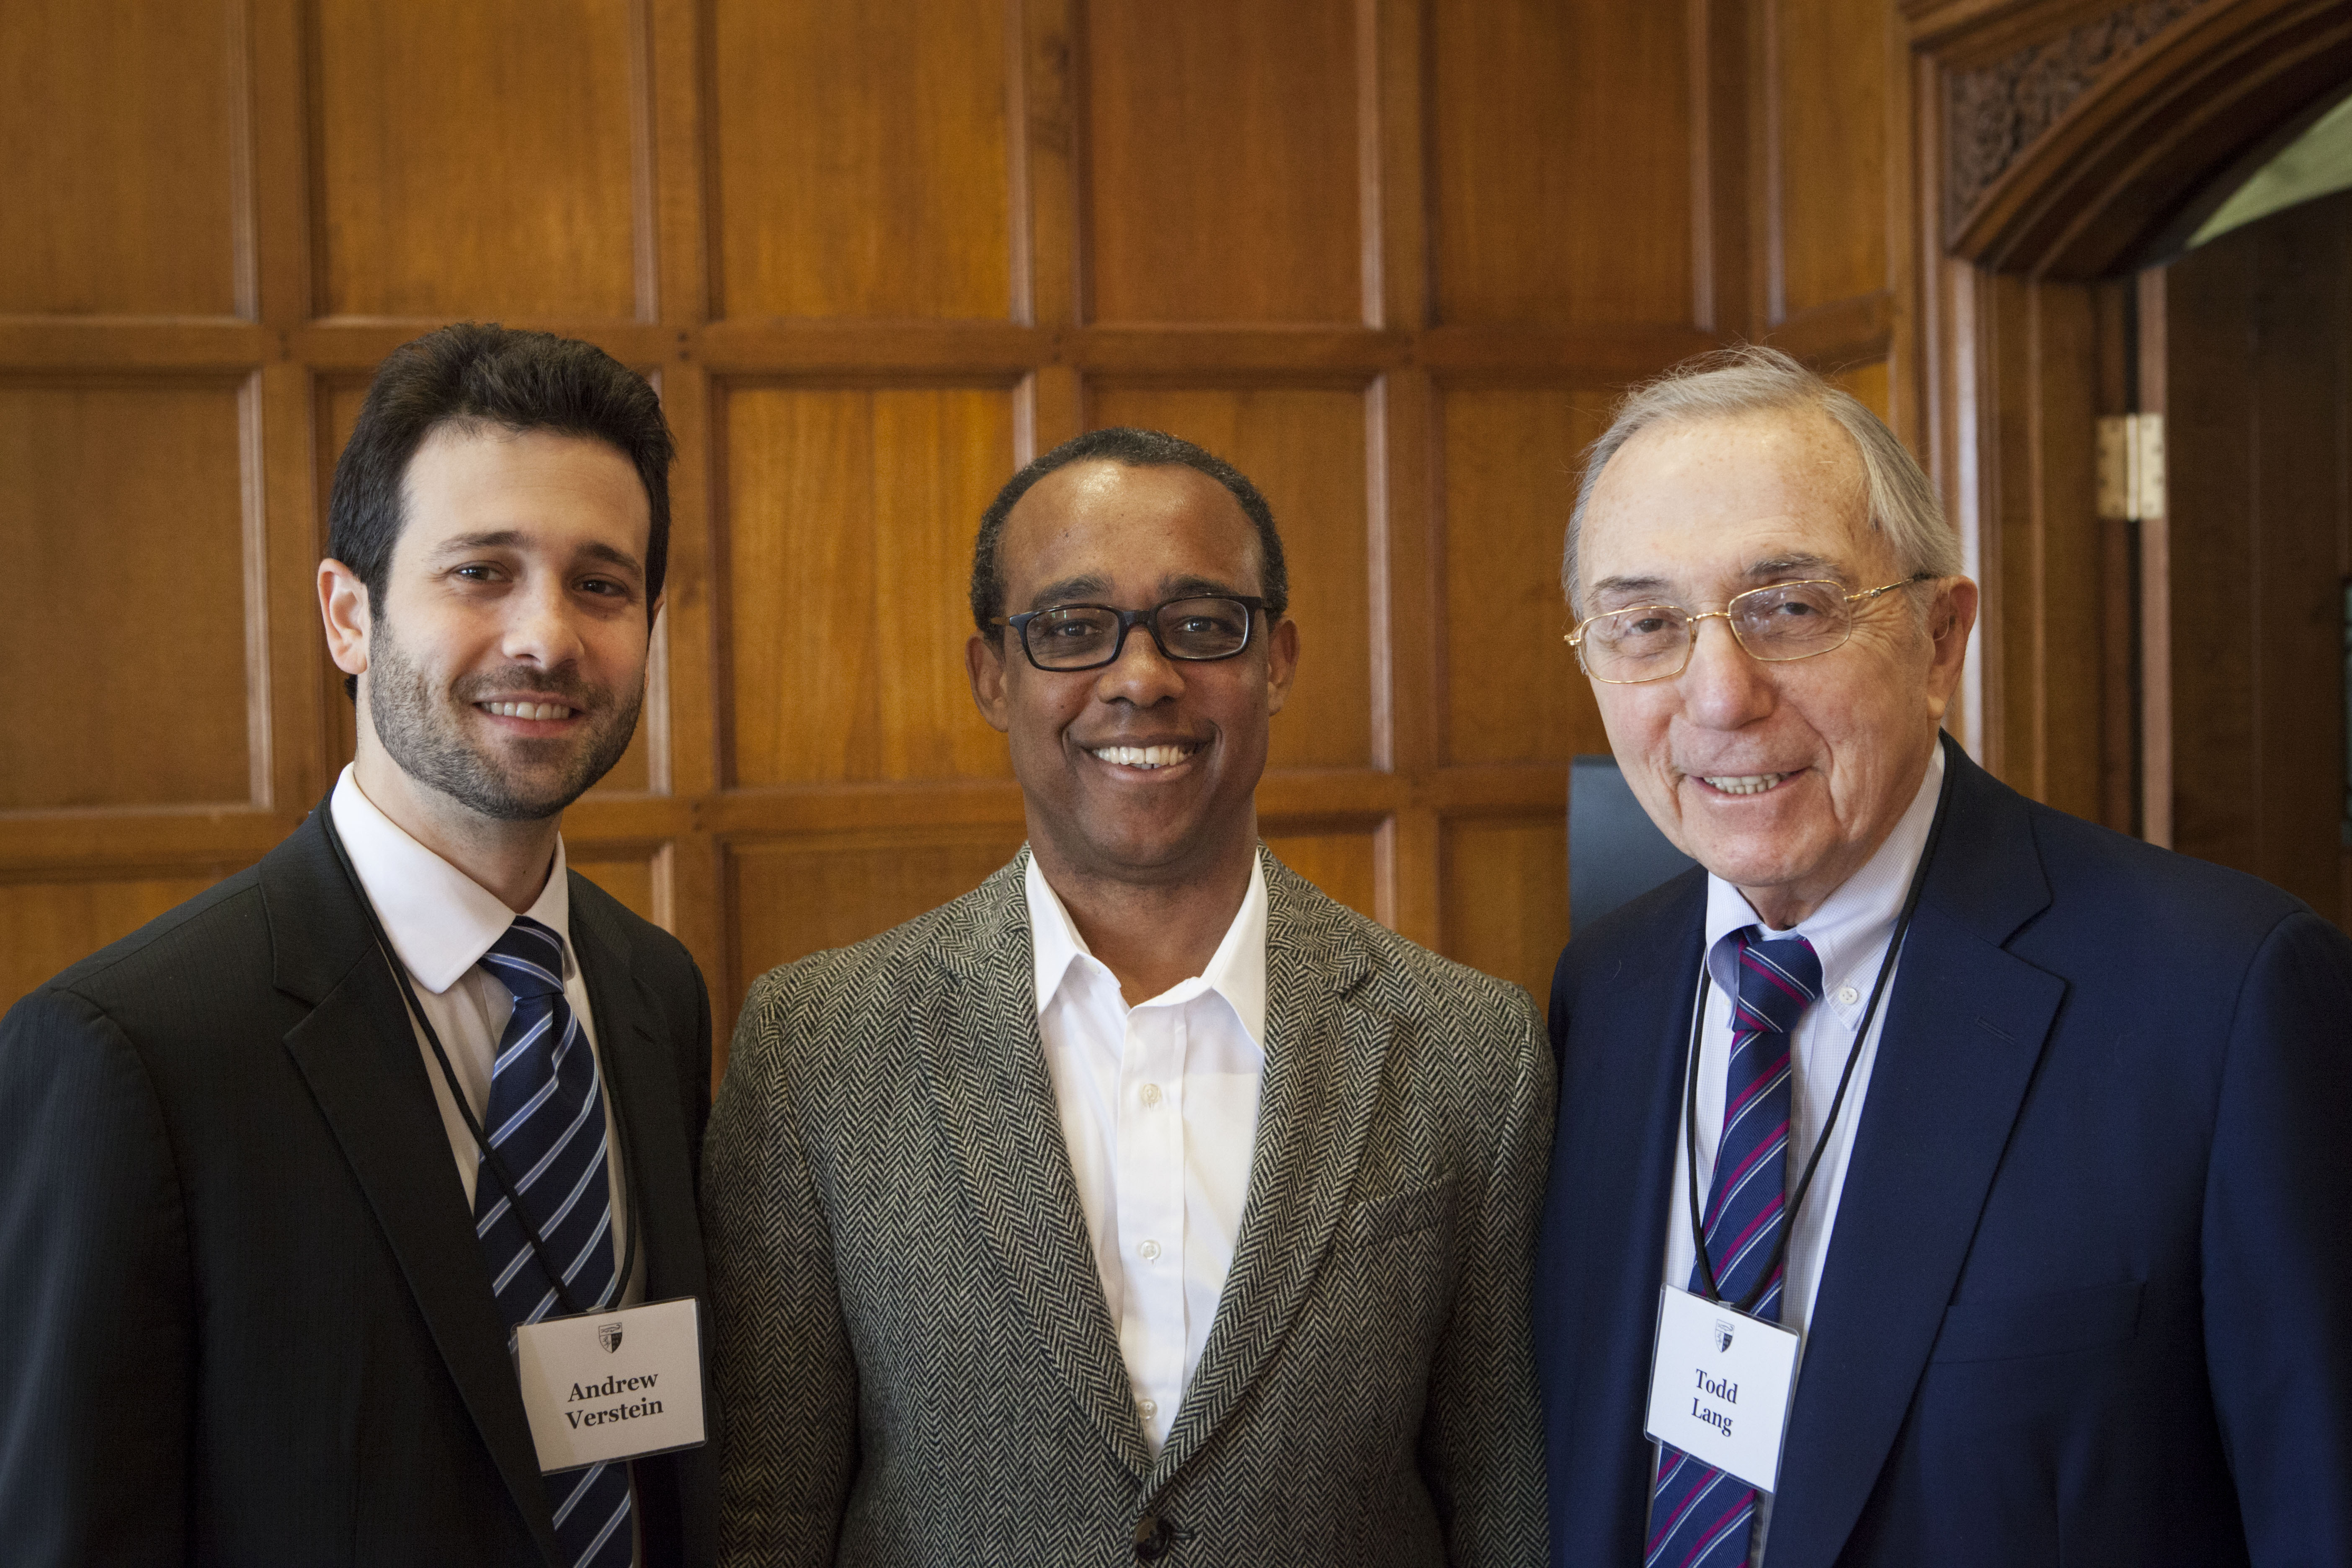 Andrew Verstein '09, YLS Prof. Richard Brooks, and Robert Todd Lang '47